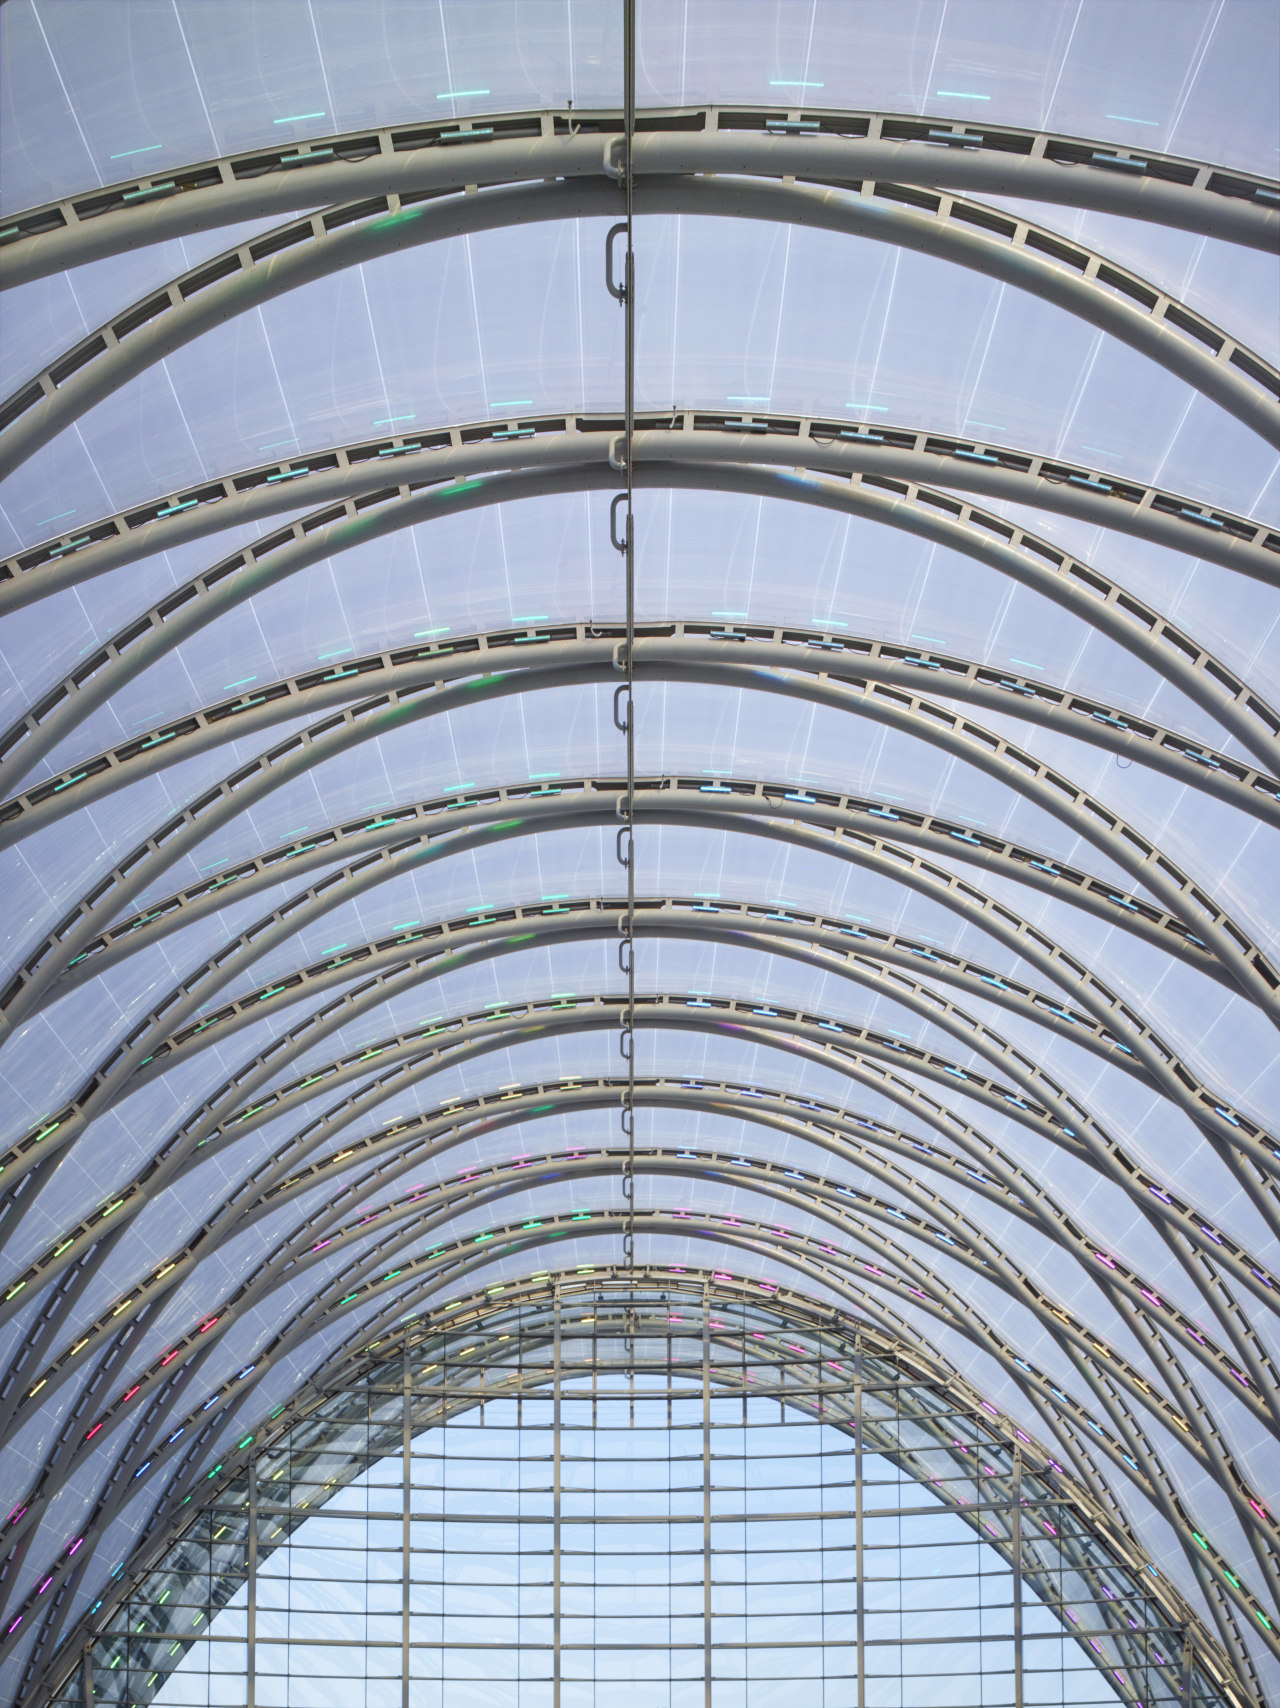 The new ARTIC transport hub in Anaheim features arch, architecture, building, daylighting, facade, fixed link, line, sky, structure, symmetry, teal, gray